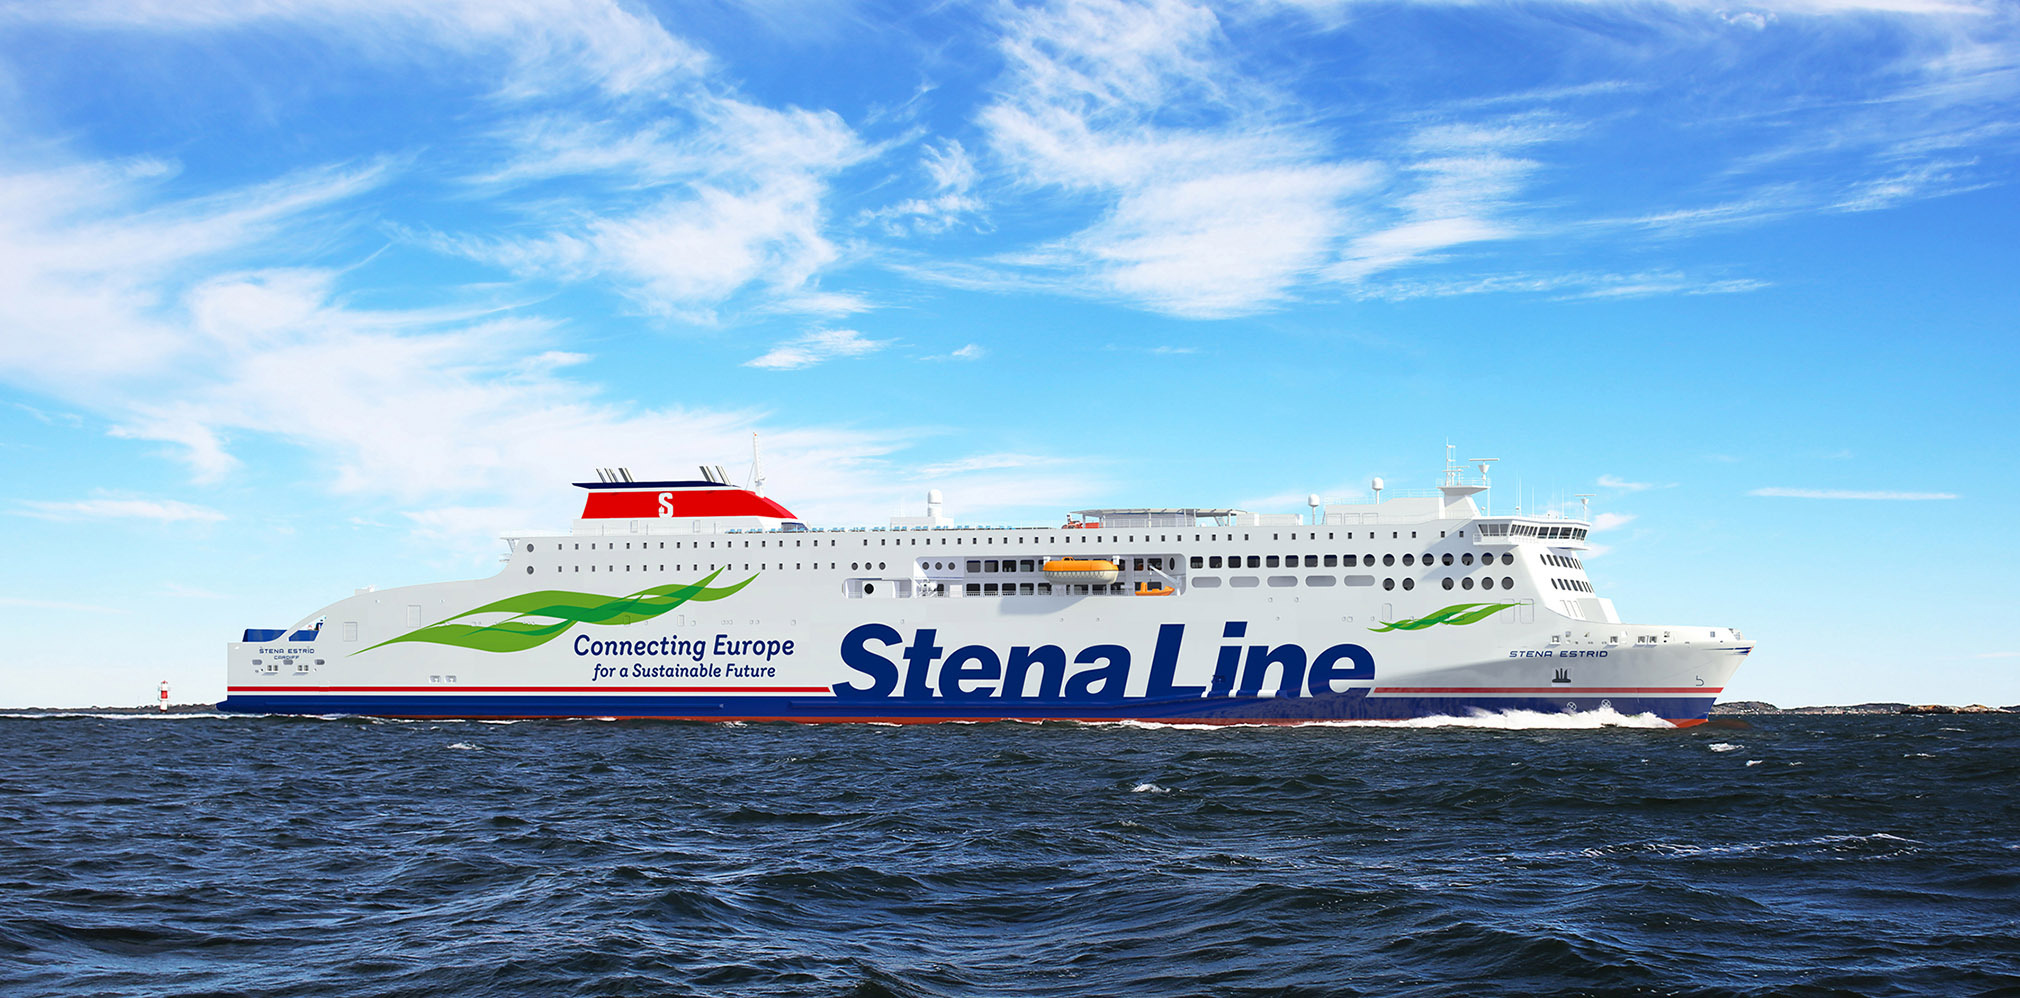 £15m Investment to Accommodate New Stena Line Vessels image